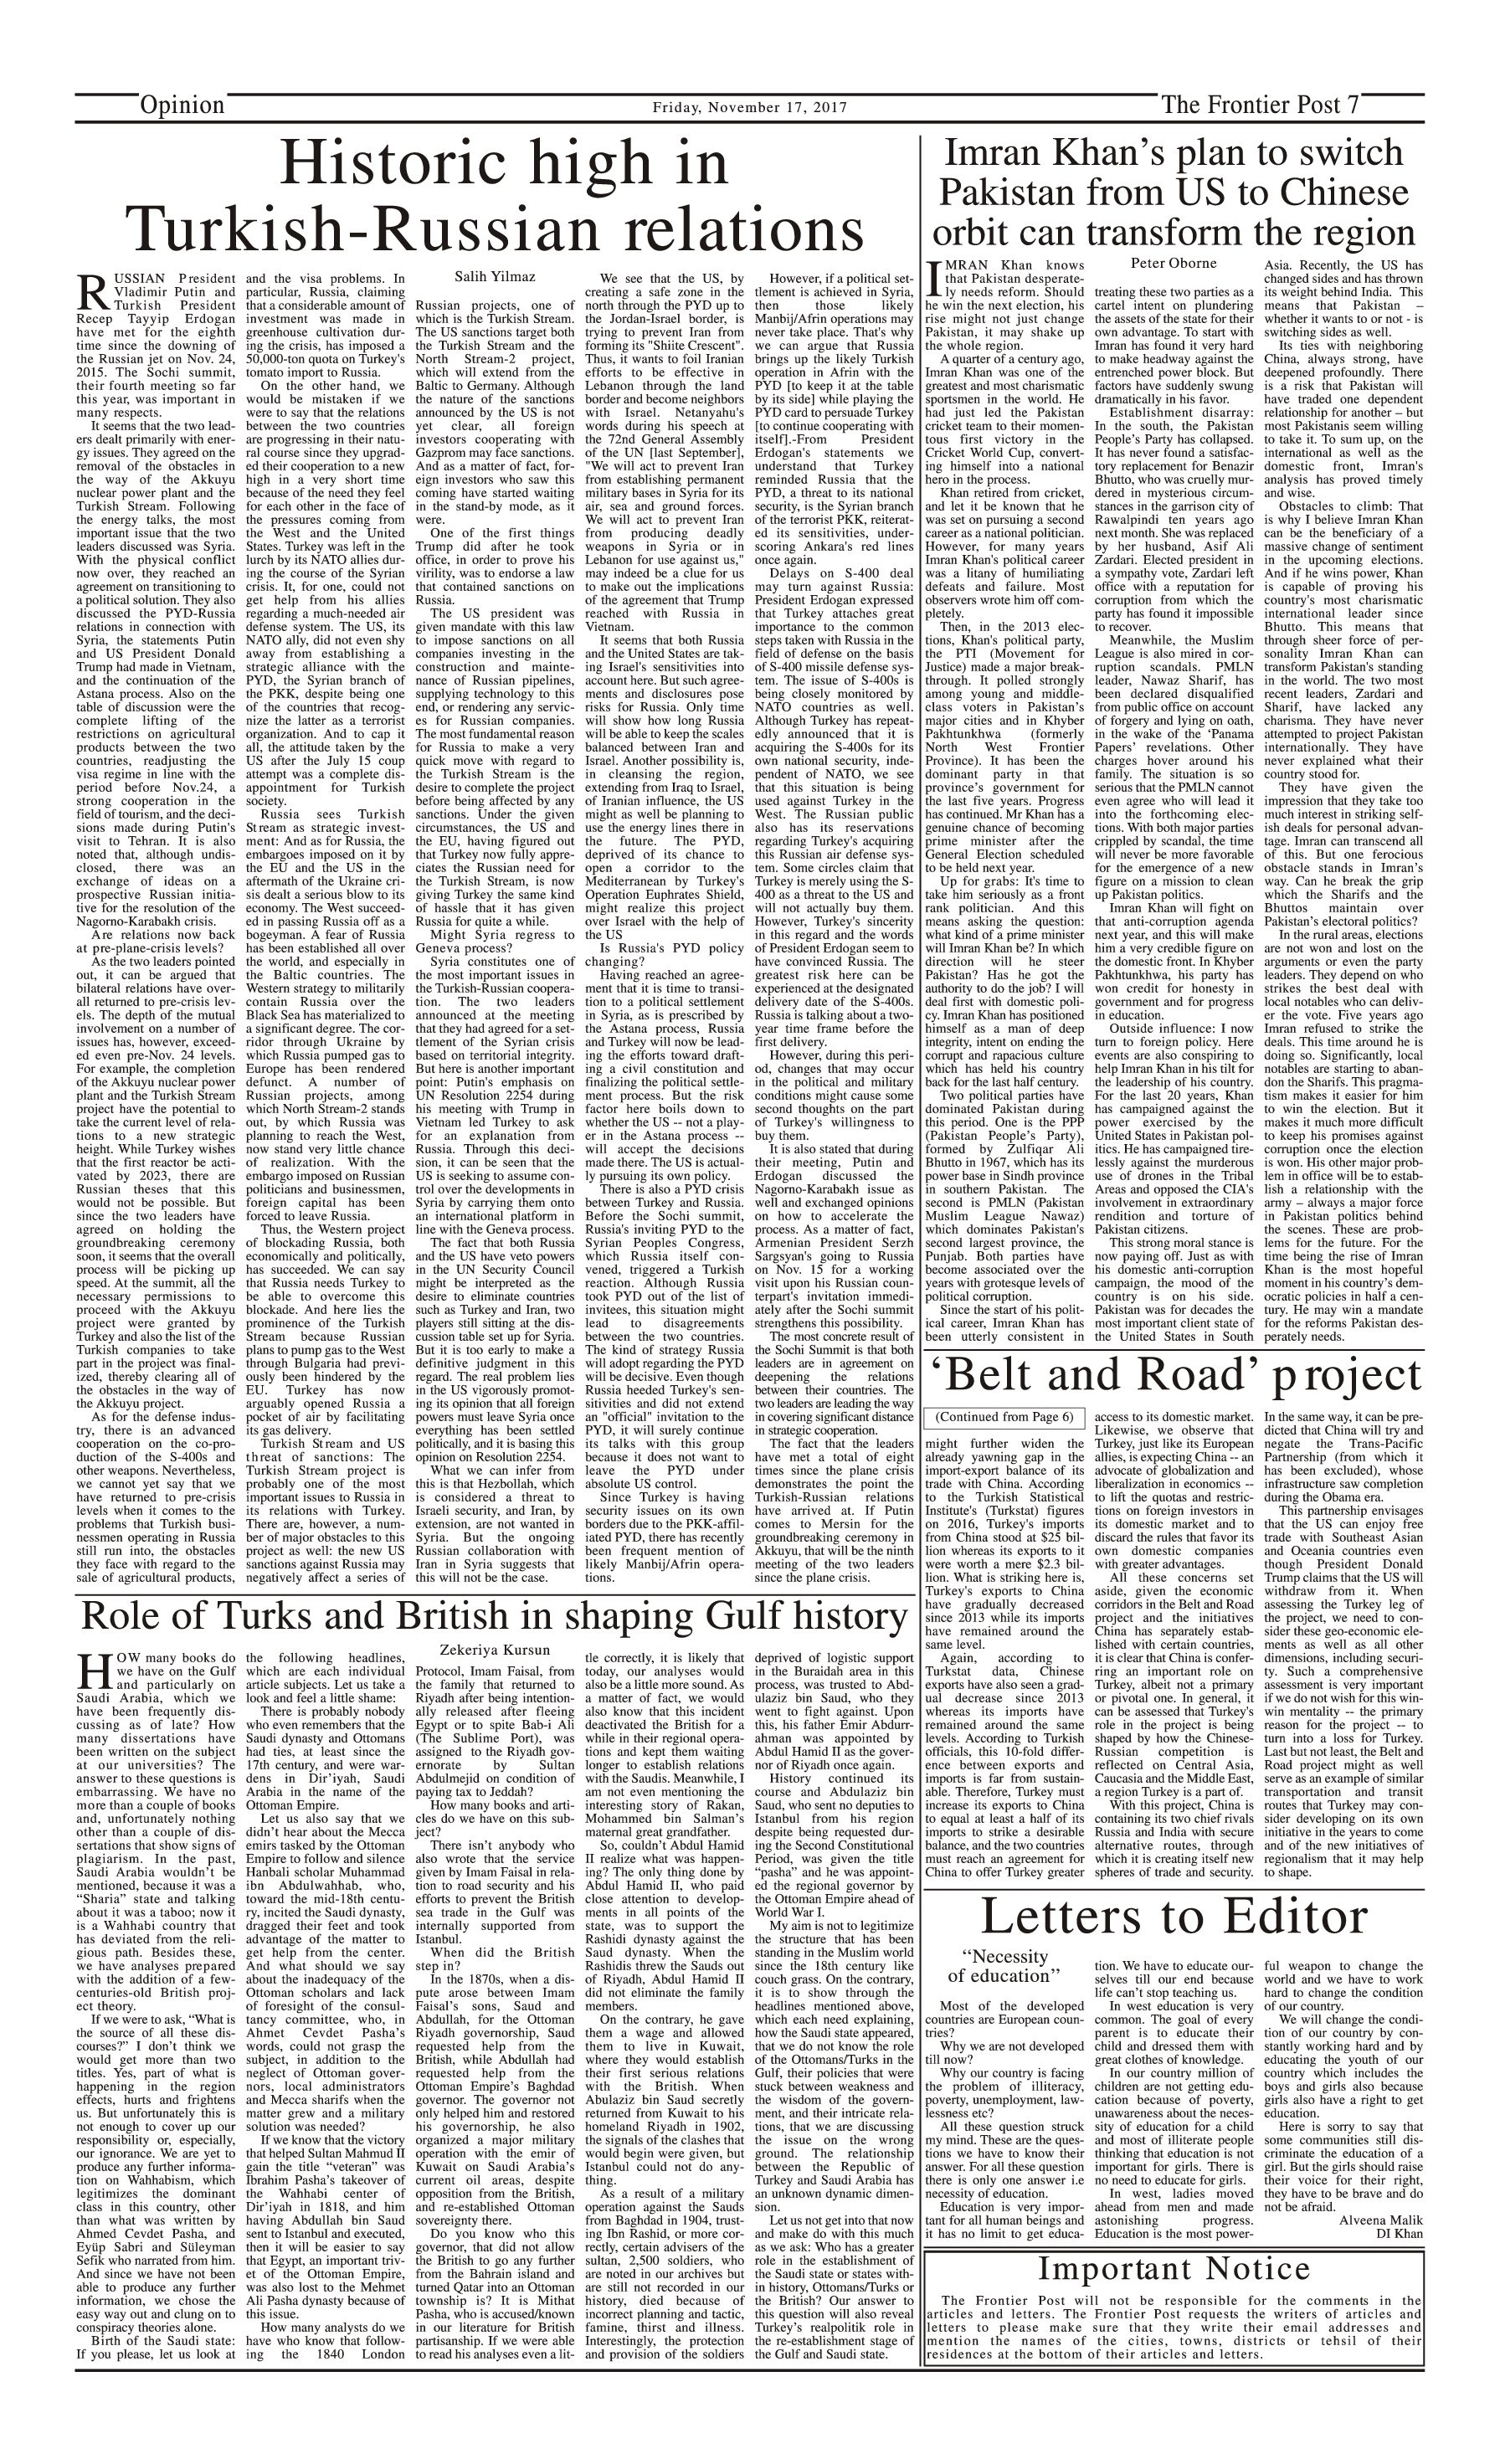 Opinion Page 17-11